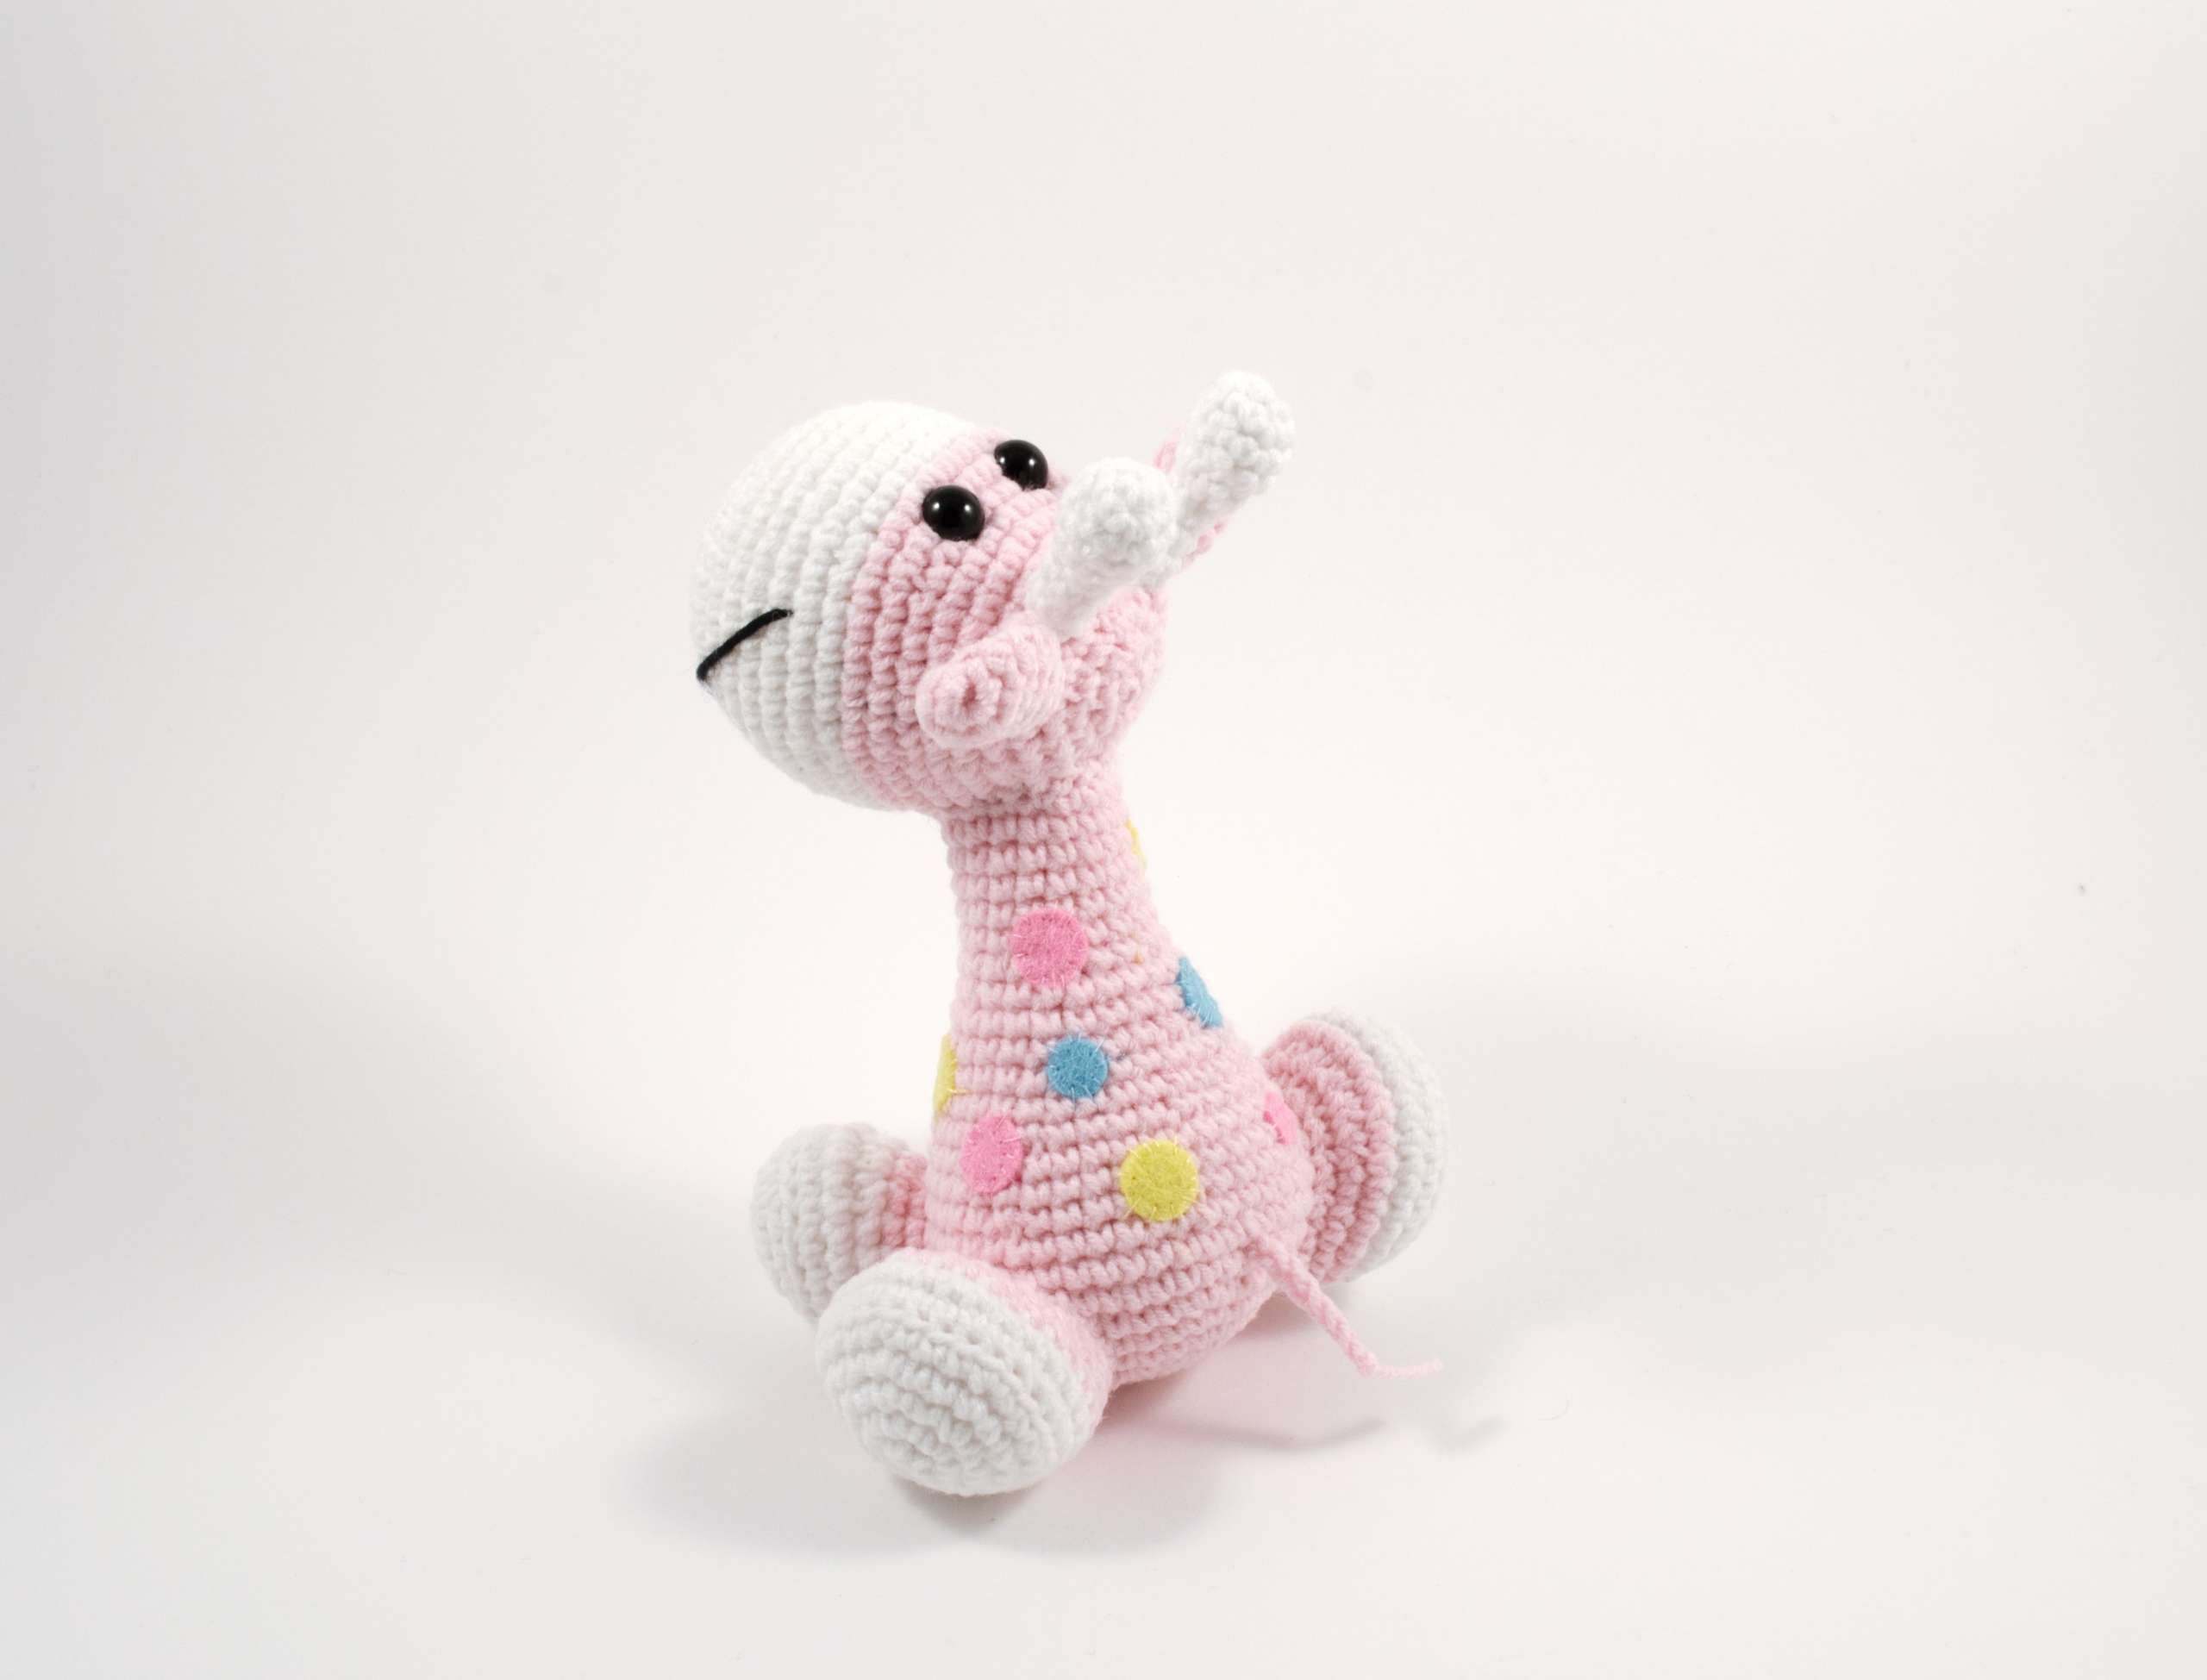 crochet pink giraffe side view